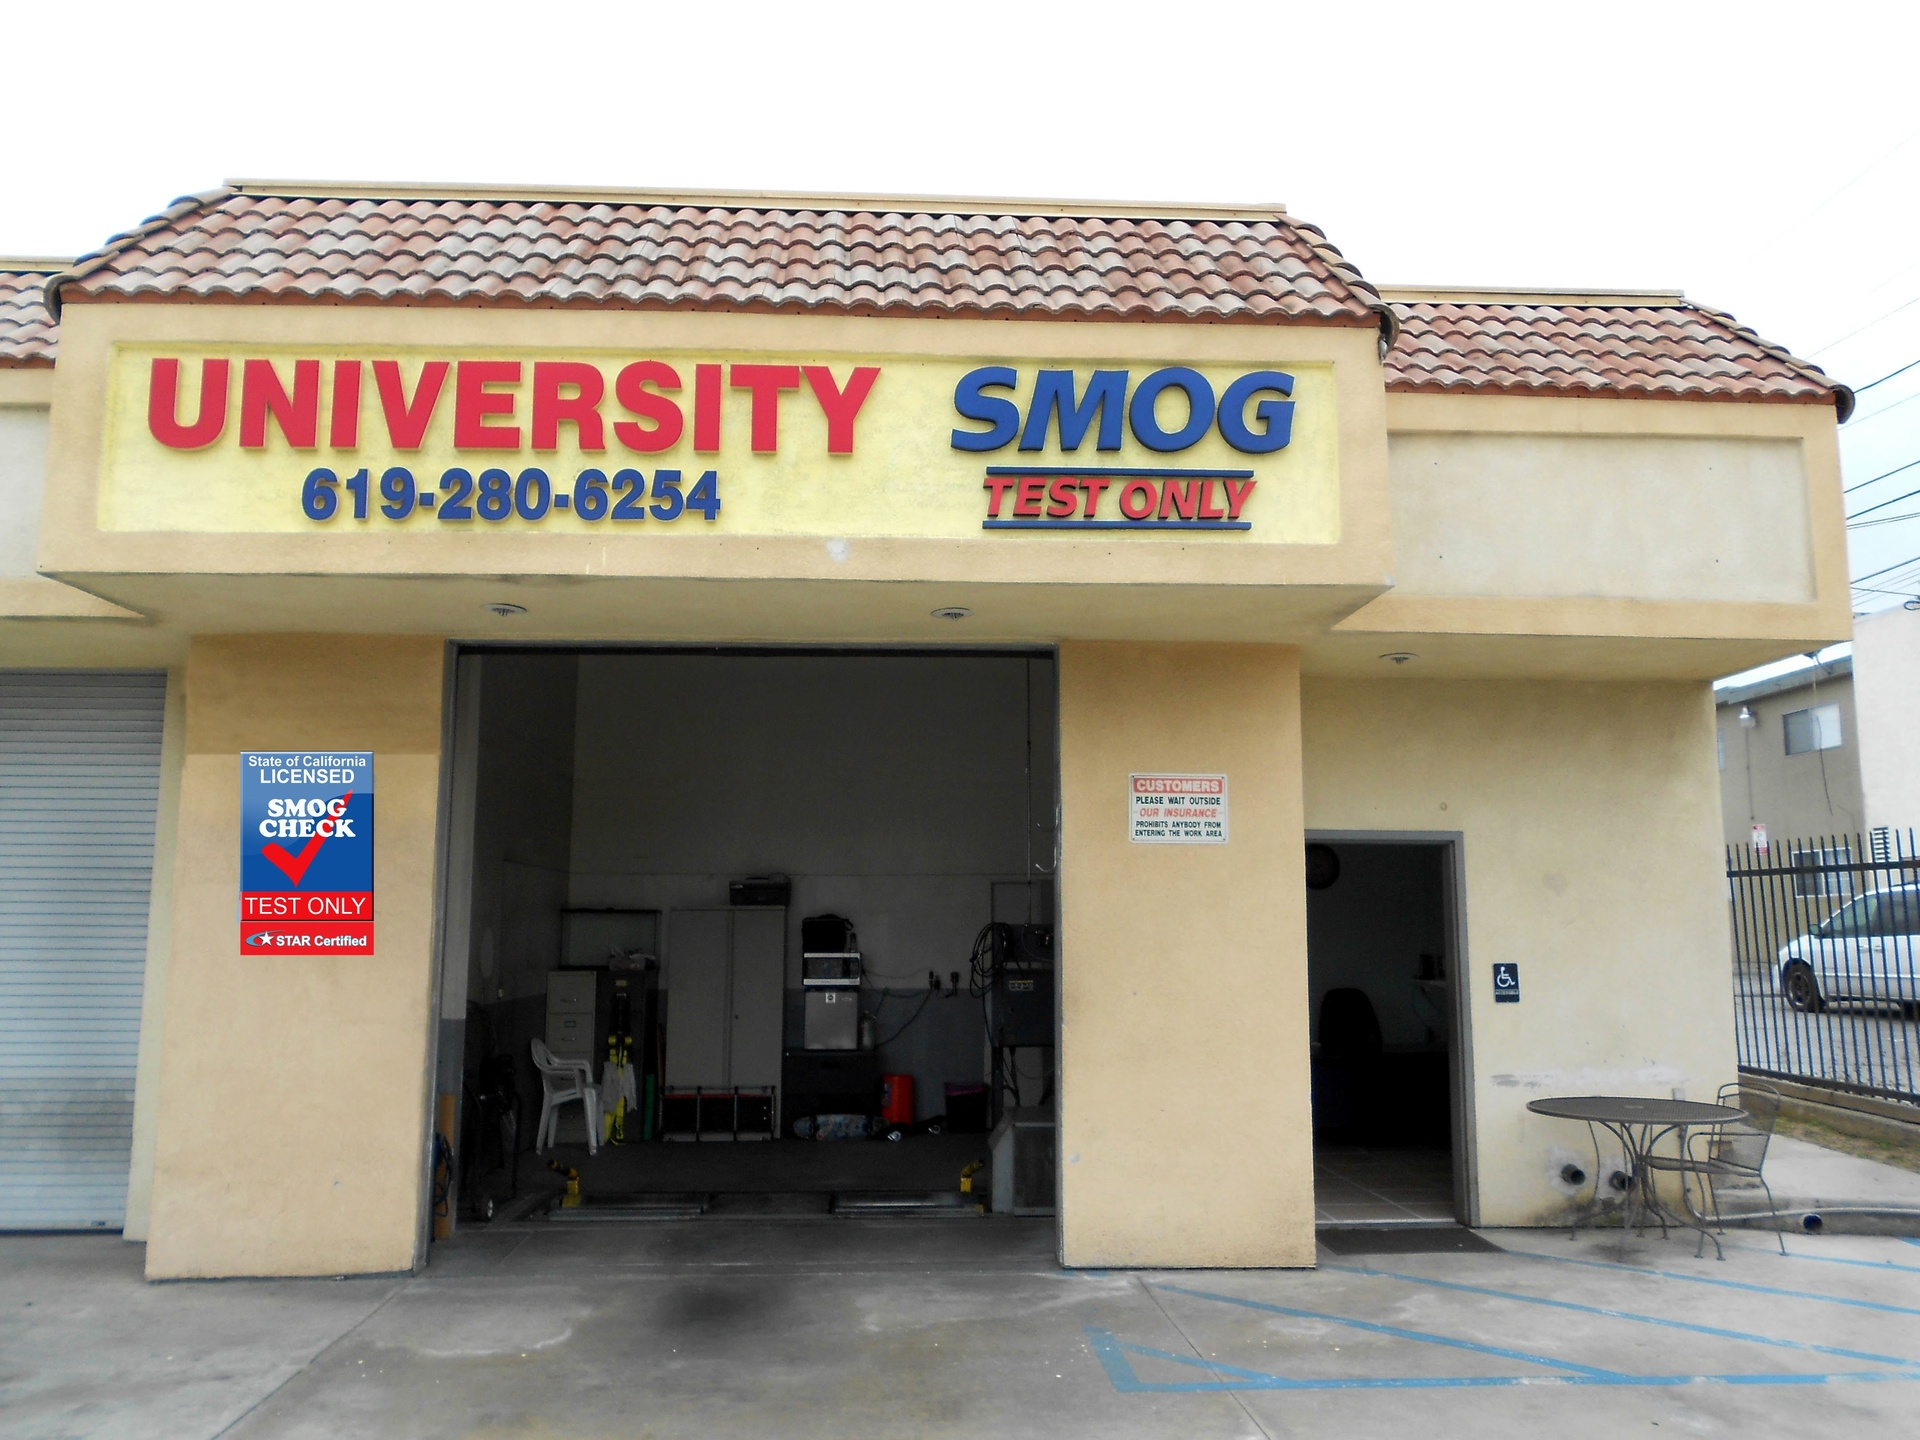 University Smog Test Only Center, 4645 University Ave, San Diego, CA, 92105, US